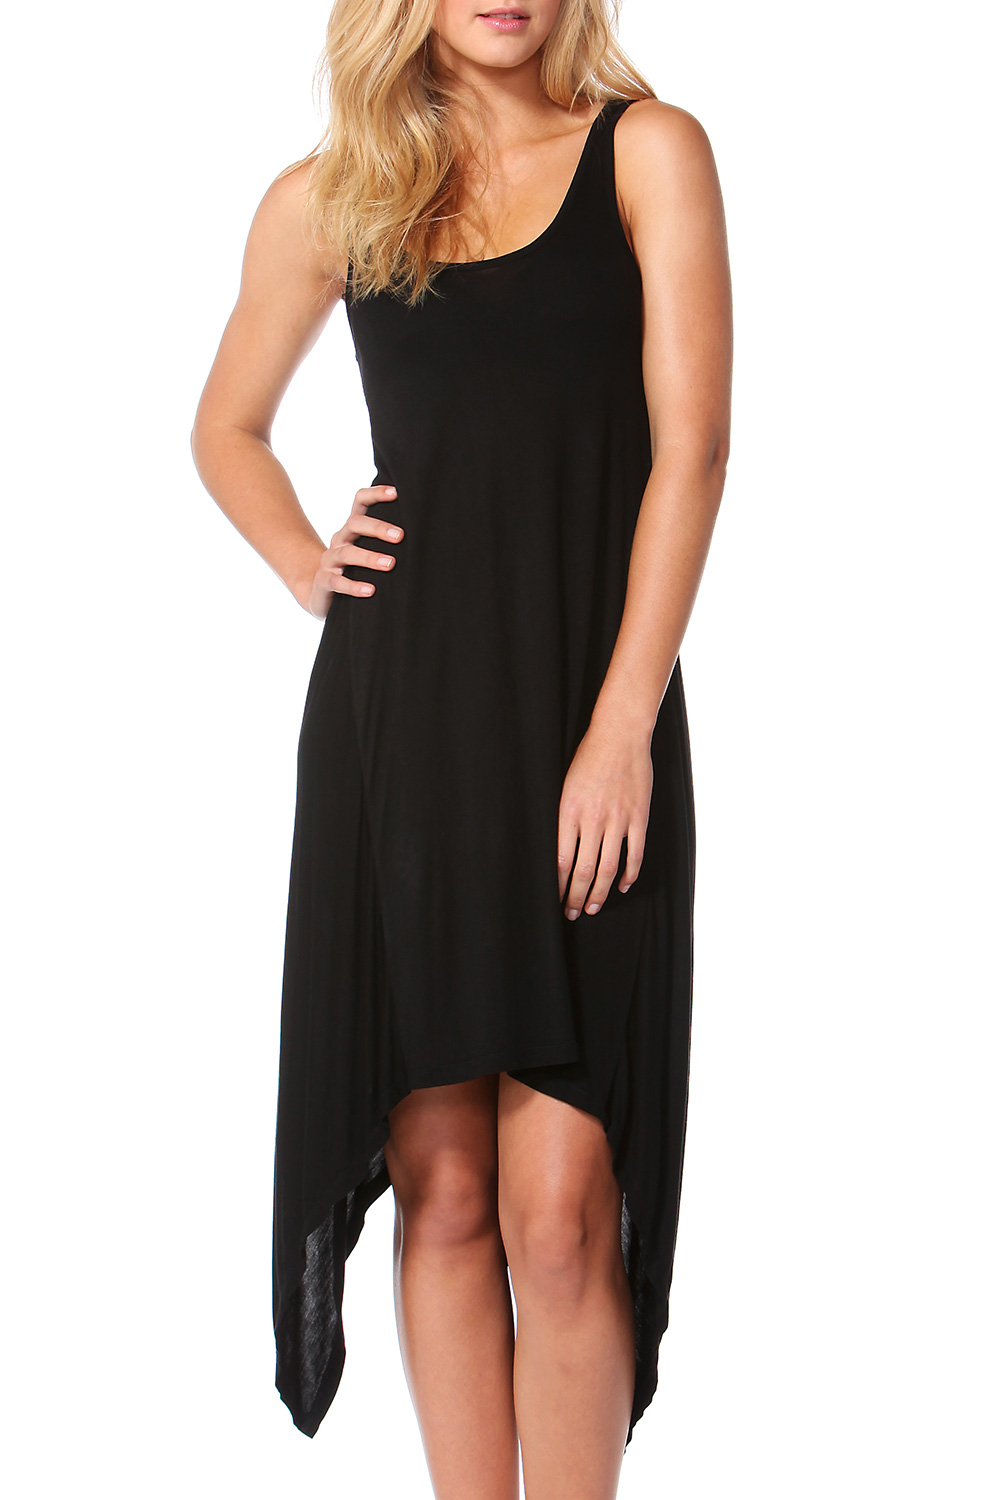 Betty Basics Florence Dress